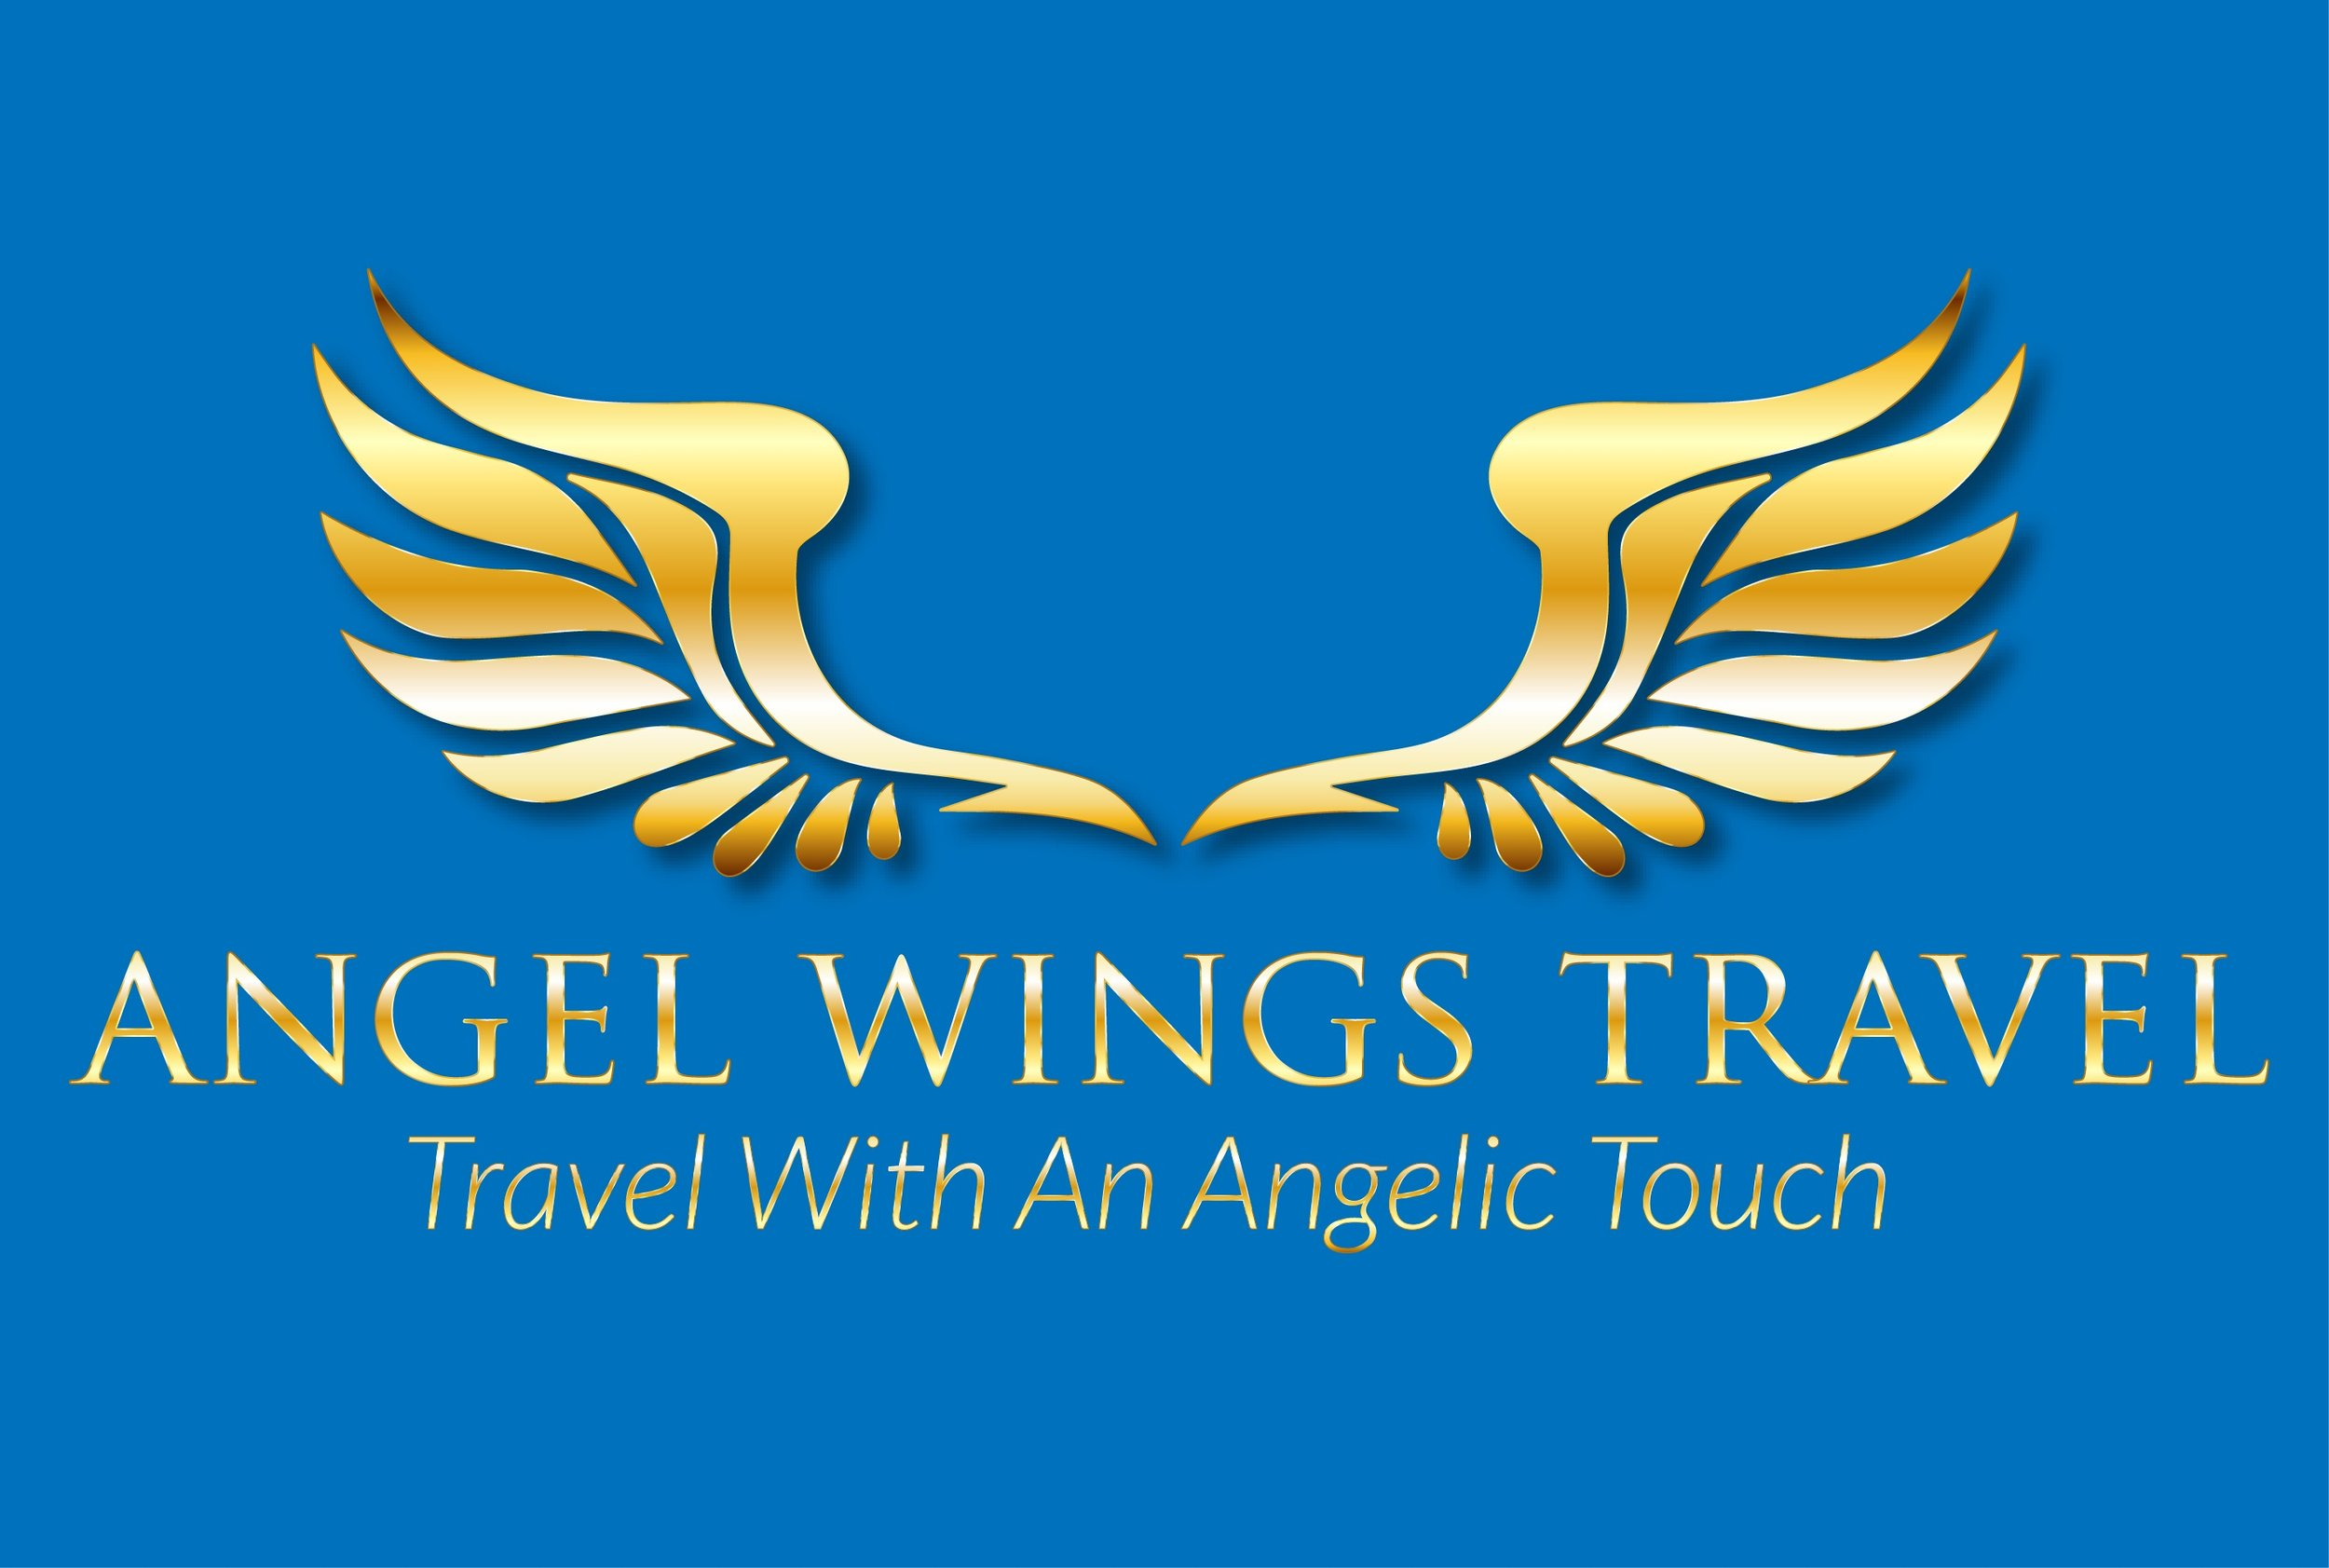 Angel Wings Travel is a travel agency with an angelic touch! As an angel card reader and angel empath, I want to share a way of travel that embraces our mutual spirituality while enjoying seeing our world. Would you like to join me? Please visit my new site:    Angel Wings Travel